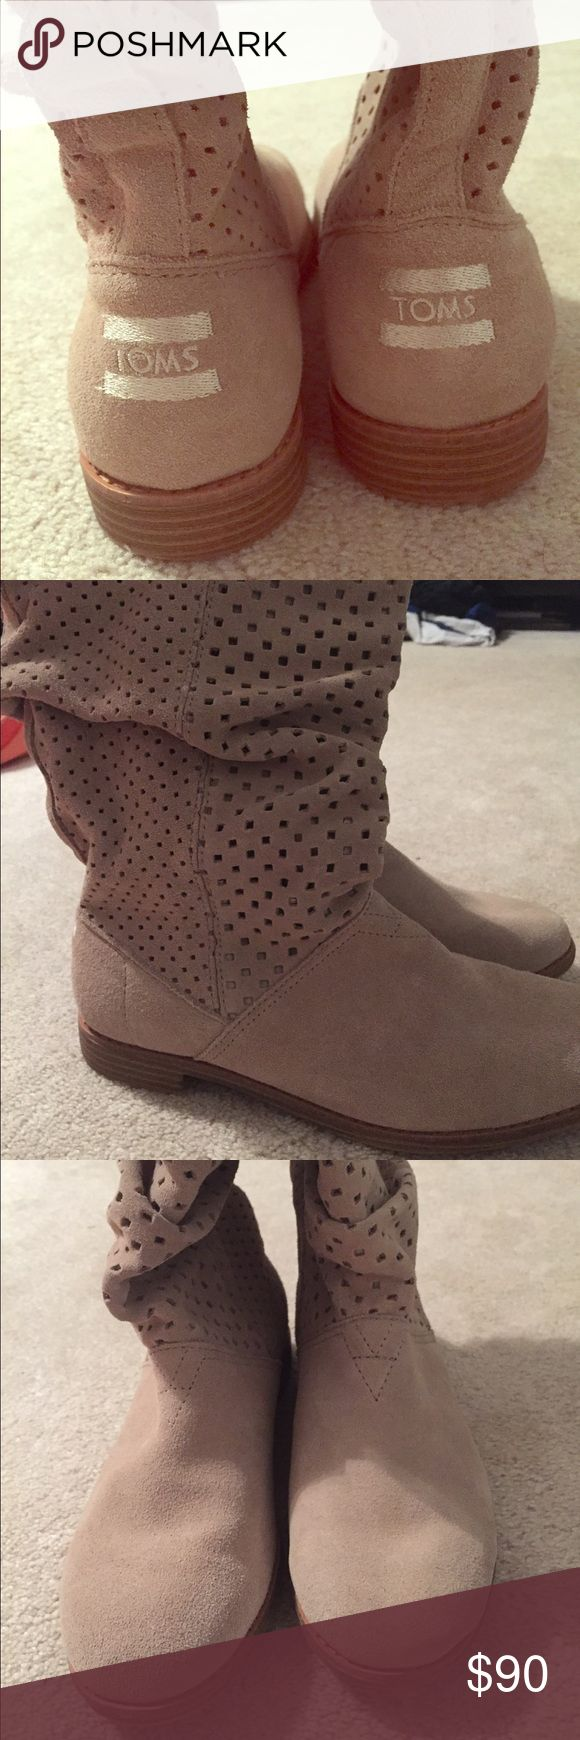 TOMS boots Perfect condition. Never worn. Size 9 women's. TOMS Shoes Heeled Boots